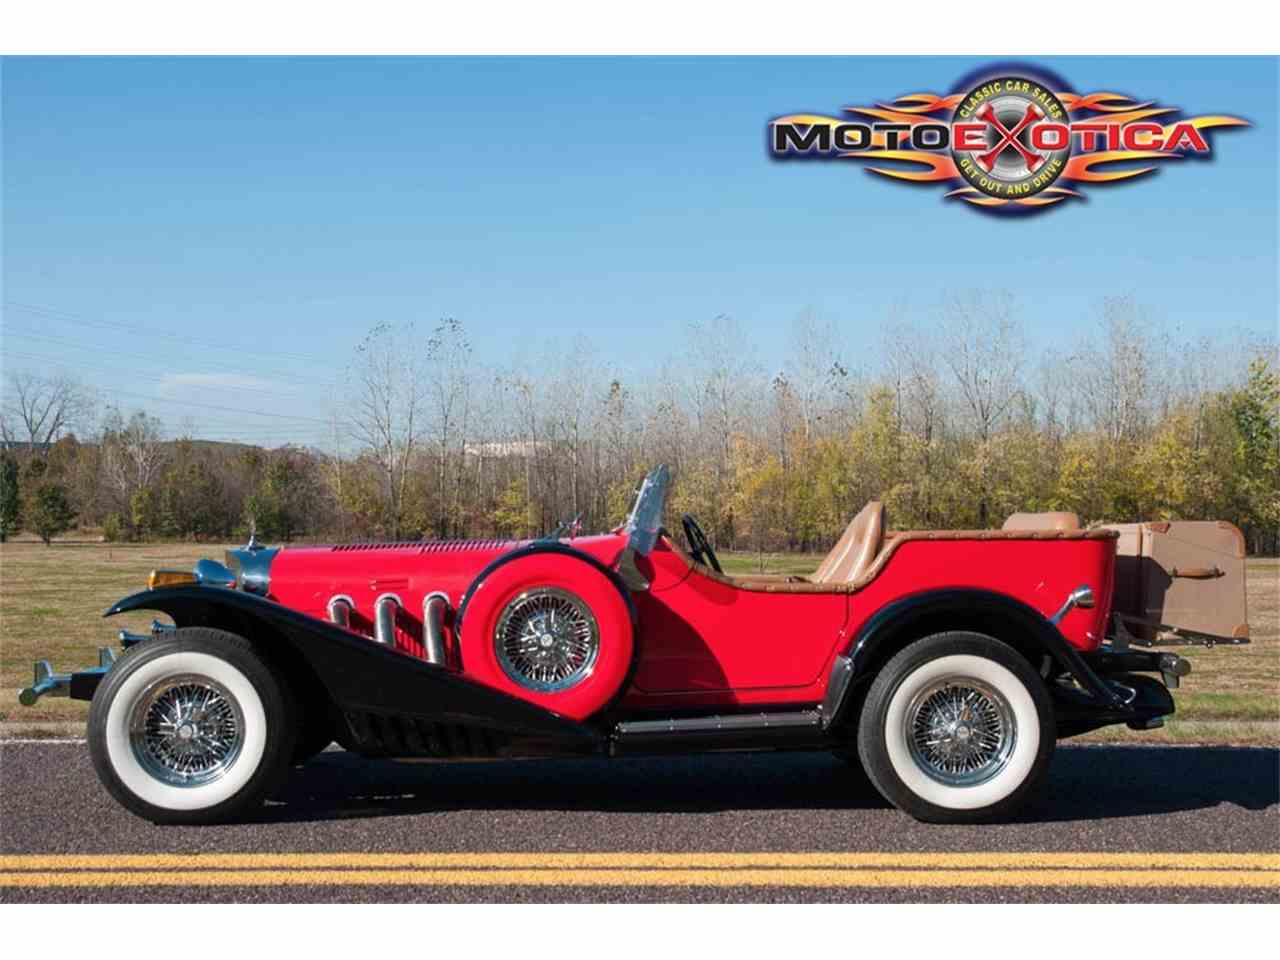 Large Picture of 1976 Excalibur Series II - $48,900.00 - JTJY